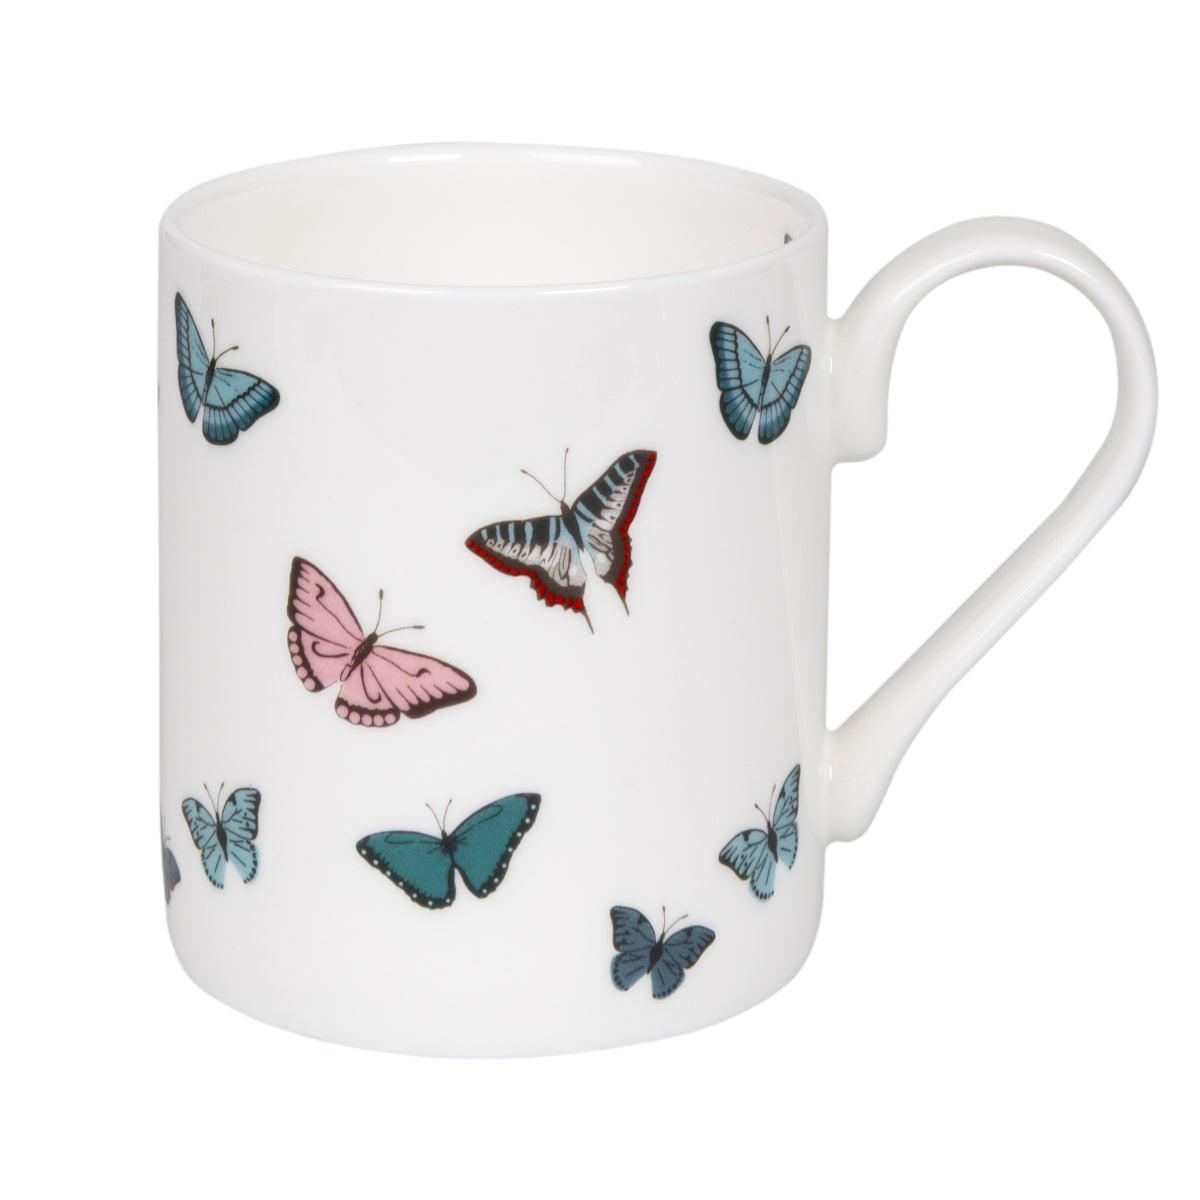 Sophie Allport fine bone china mug covered in colourful butterflies.